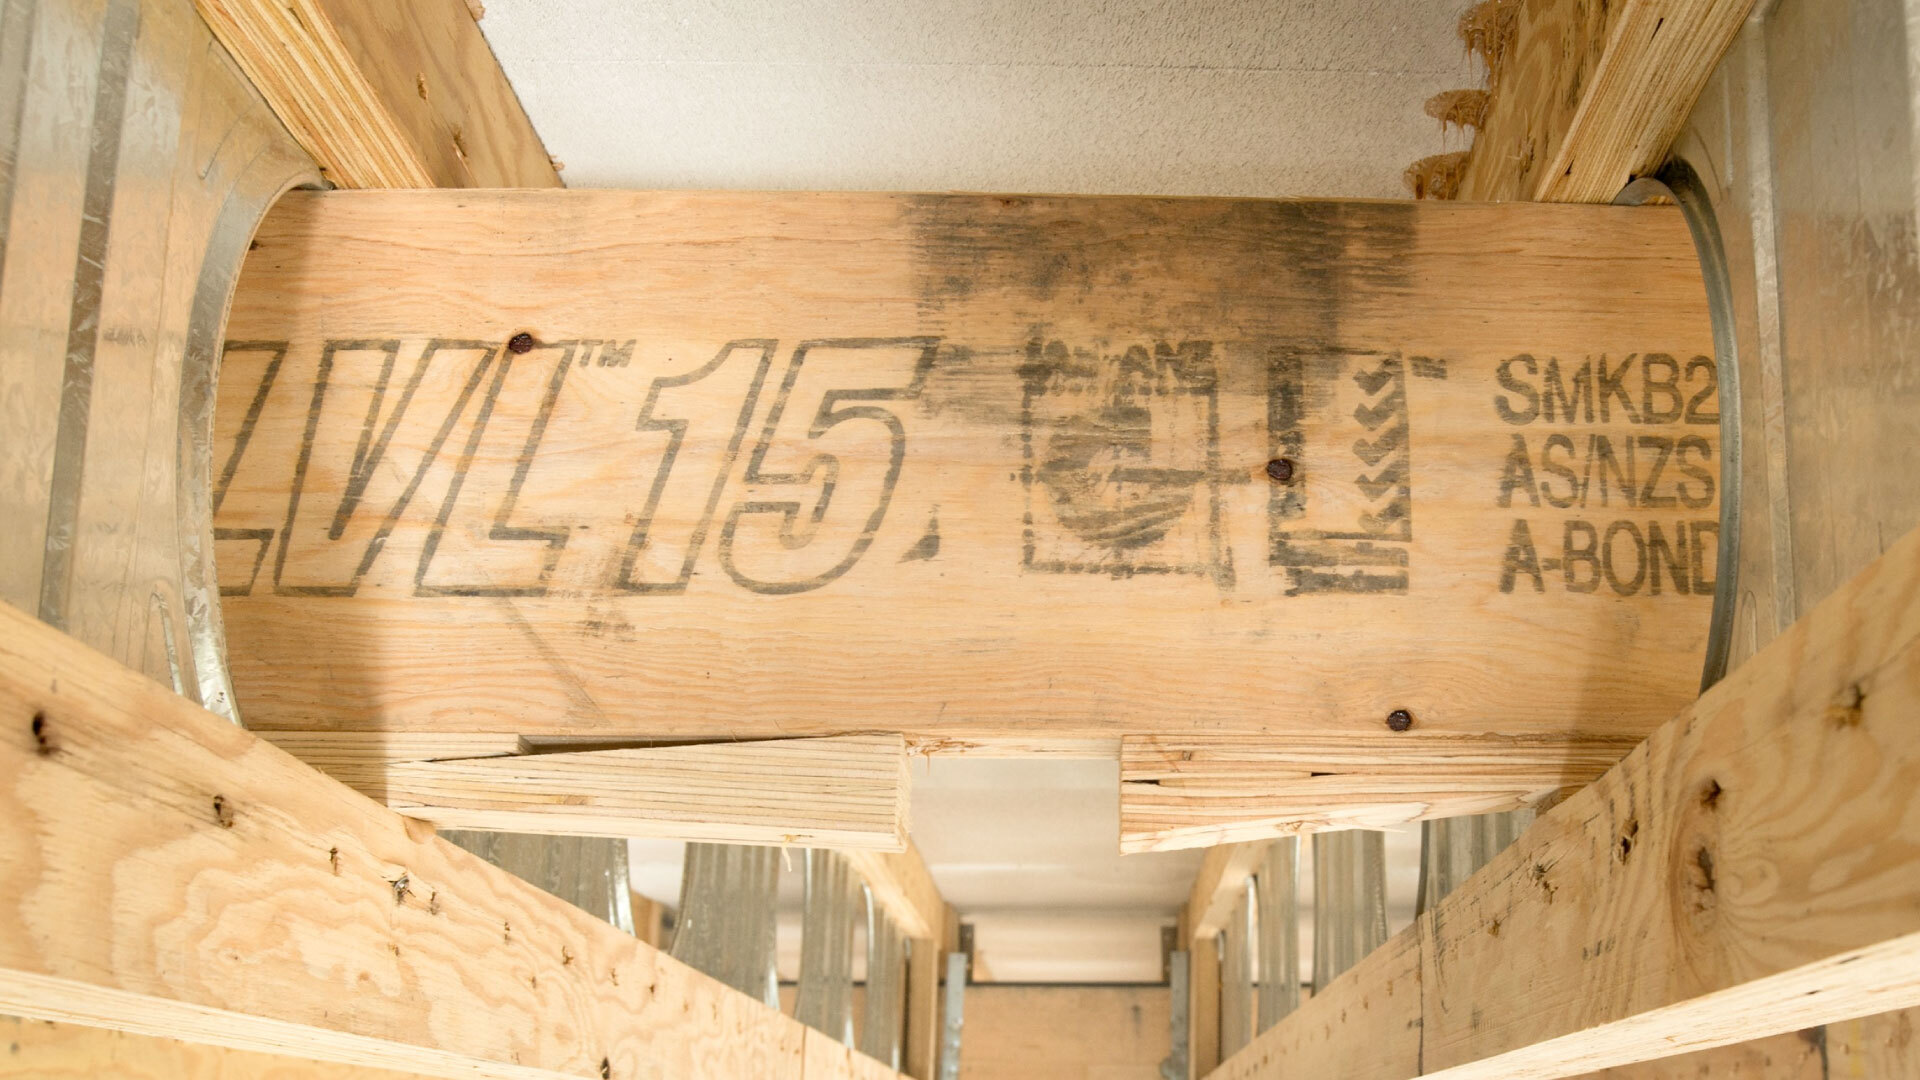 2/8/21 – Contemporary Construction Using Engineered Wood Products